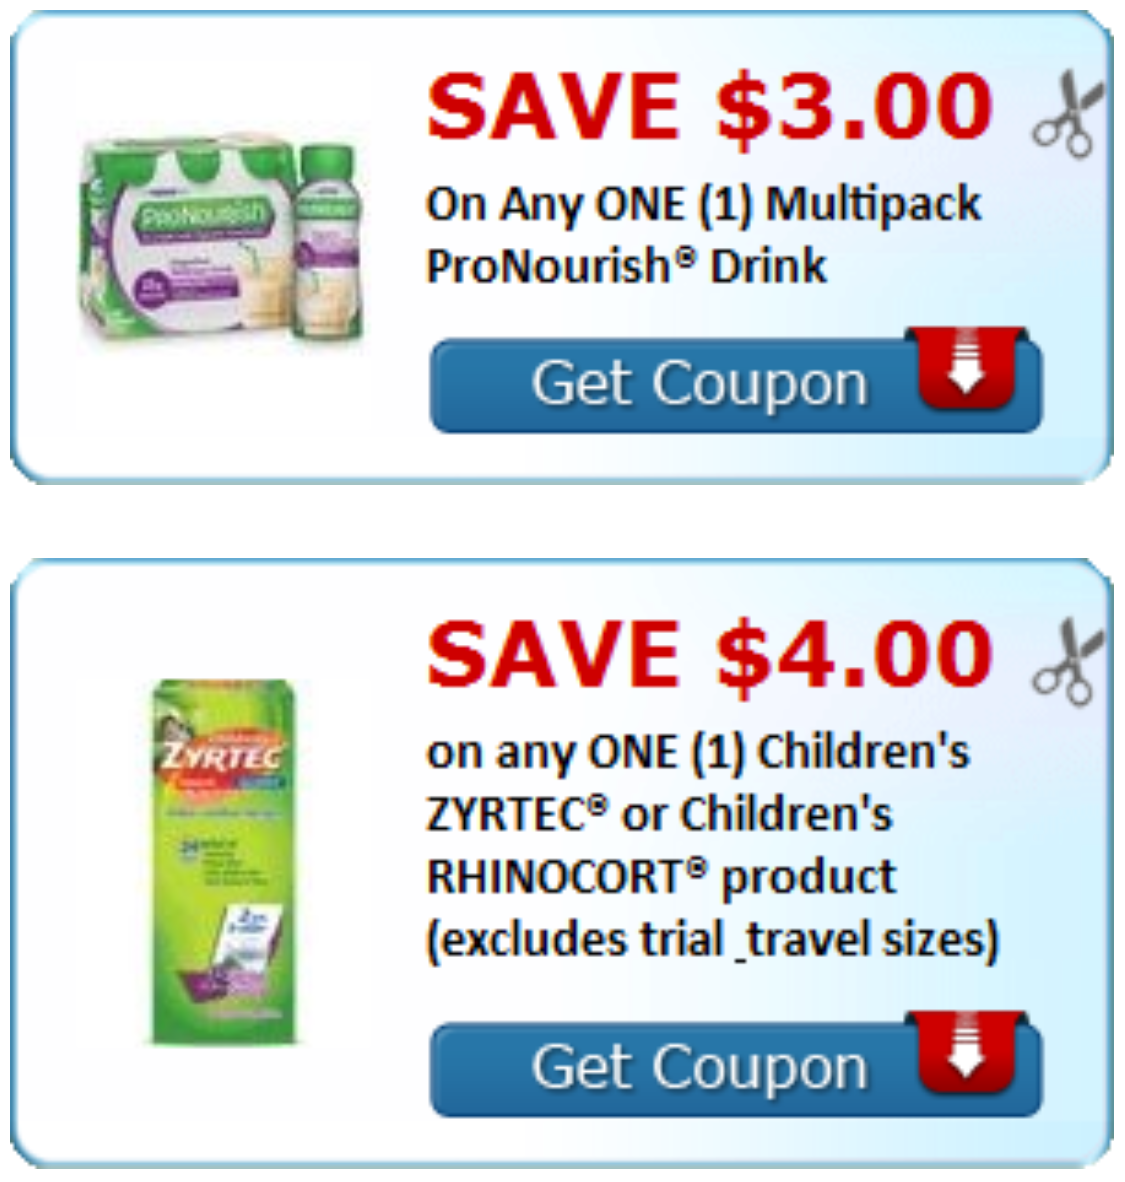 graphic about Zyrtec Printable Coupon $10 identify Print your Conserving for ProNourish Zyrtec Directly In this article